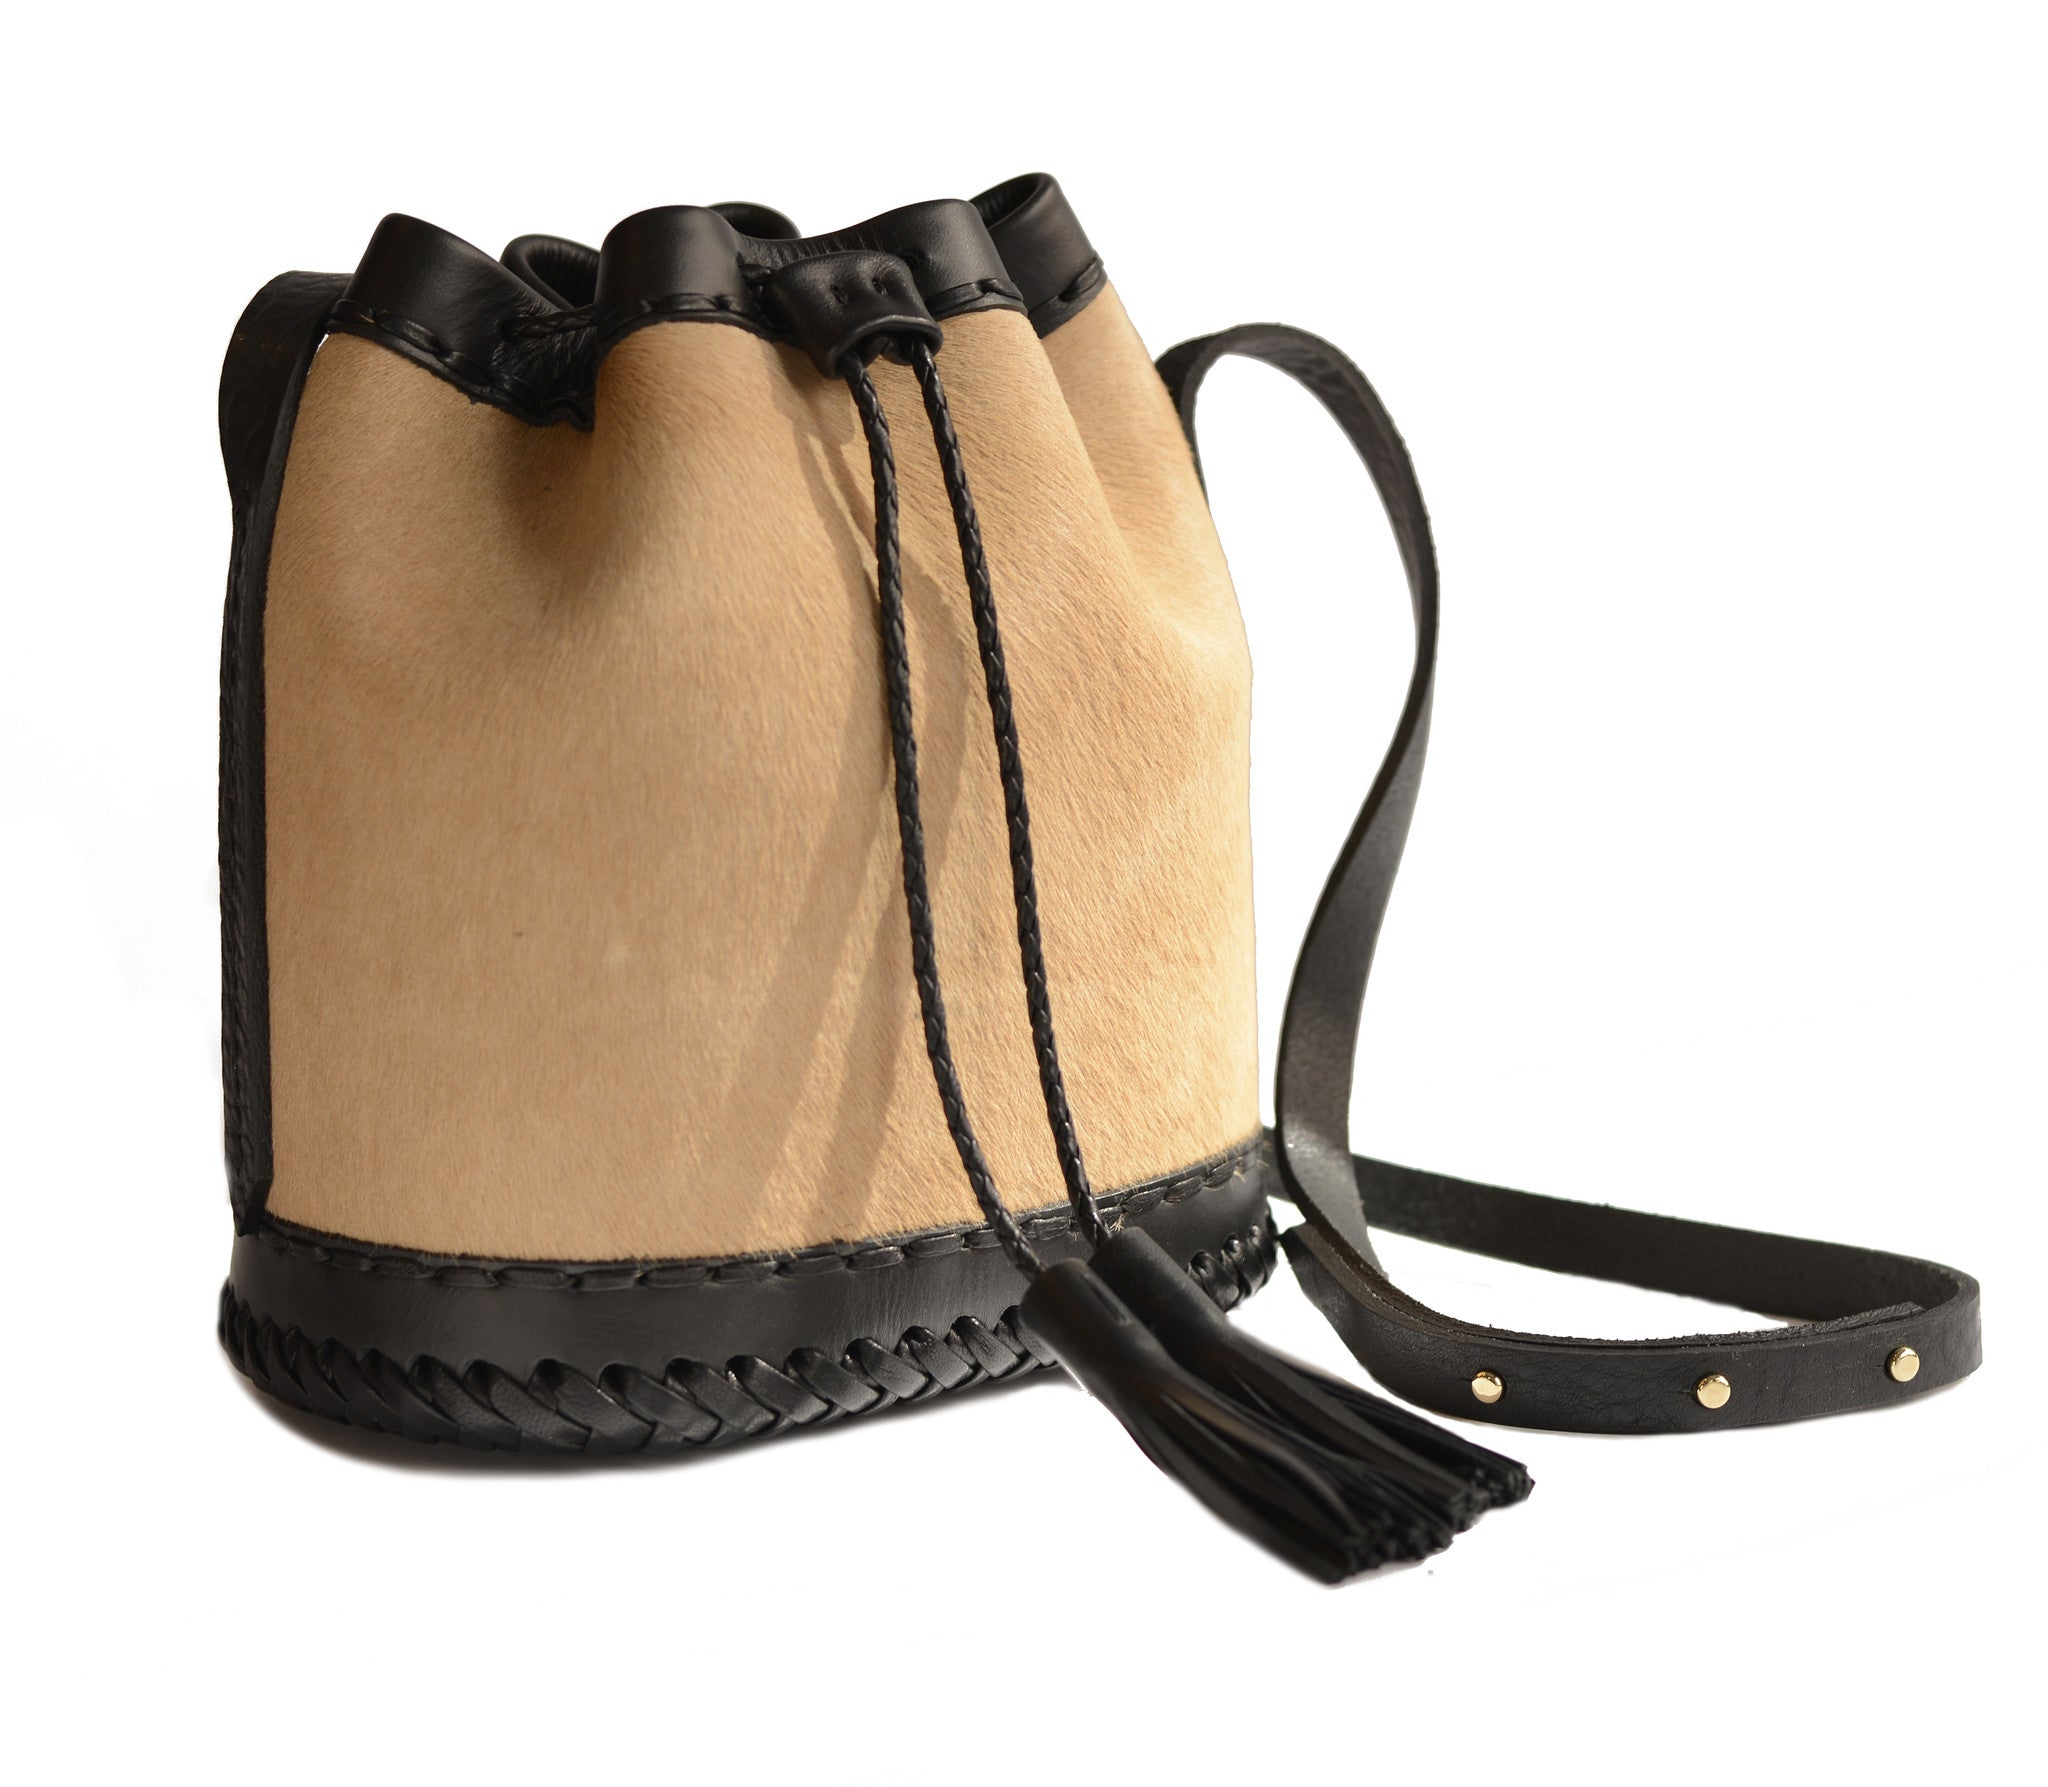 Sand Brown Carmel Tan black Leather cowhide Pony Cow Fur Small carriage Bag Wendy Nichol Luxury Handbag purse Designer handmade in NYC New York City bucket Drawstring Draw String Pouch Small fringe tassel Mini cross body adjustable durable strap High Quality Leather